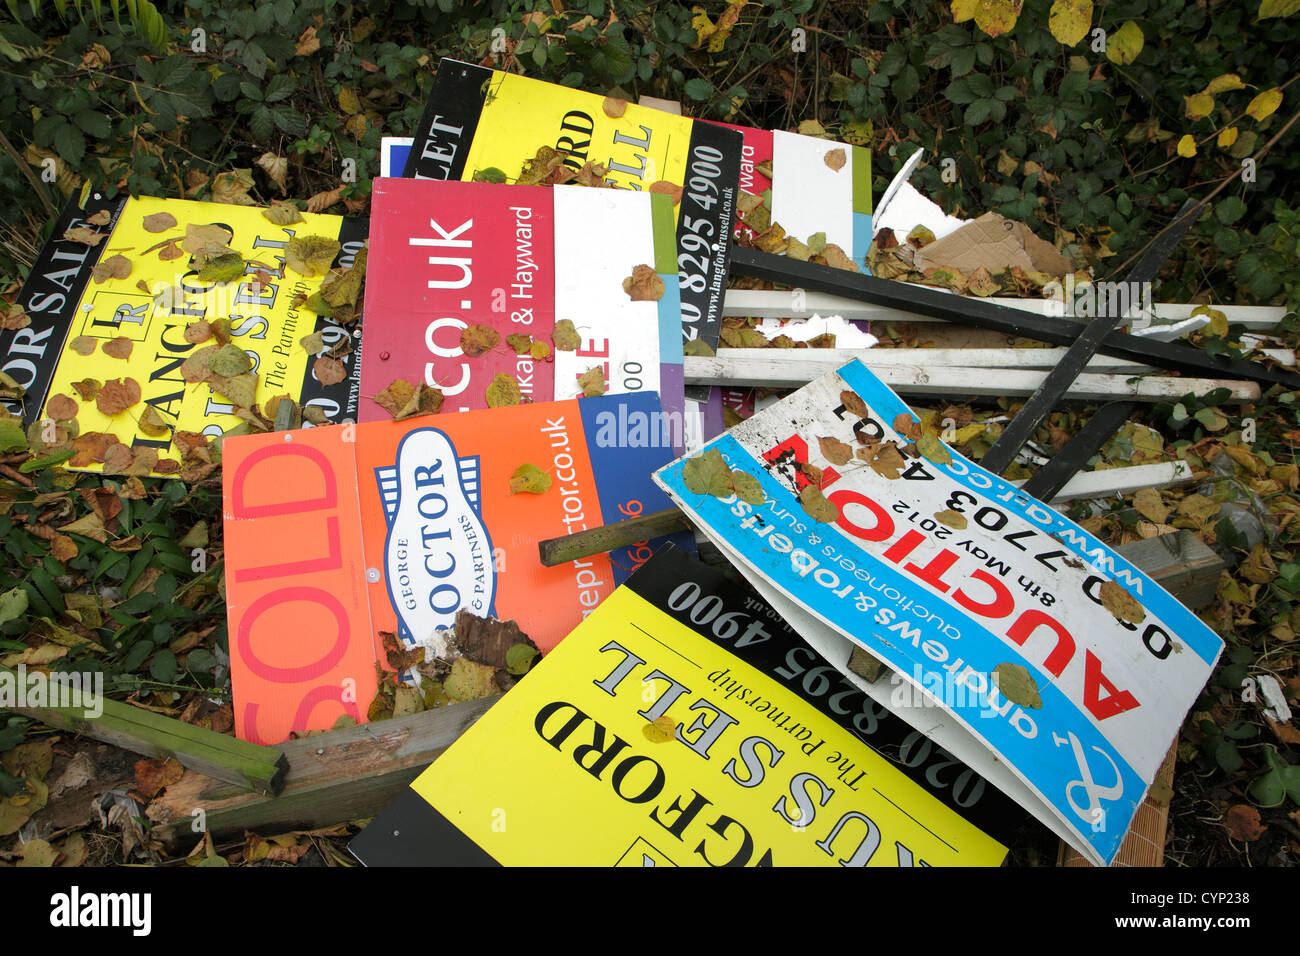 Dumped estate agent property signs - Stock Image